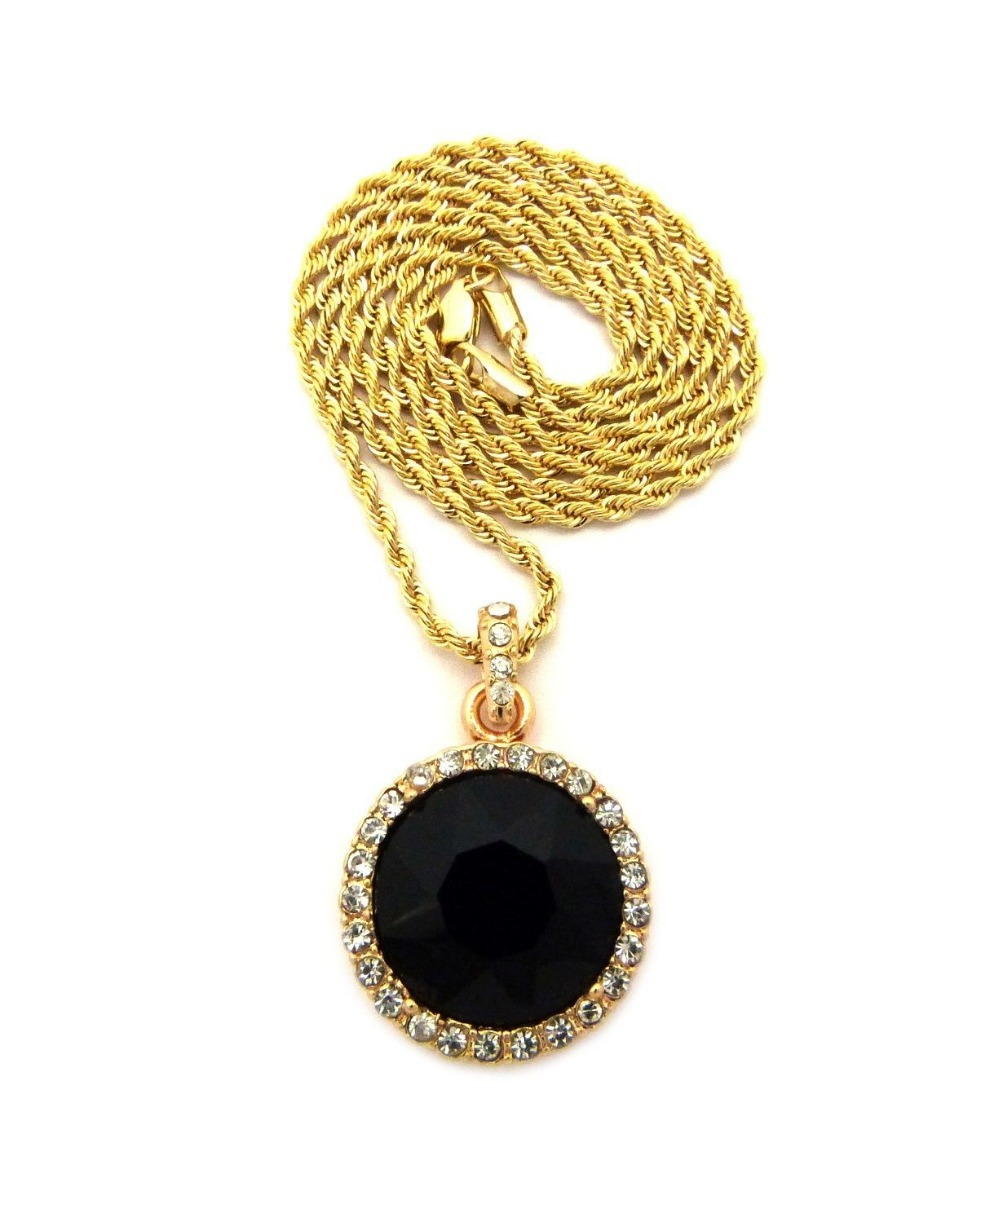 black jewelry handmade mm pin foot chain onyx stone plated per cz shape gold round chains faceted